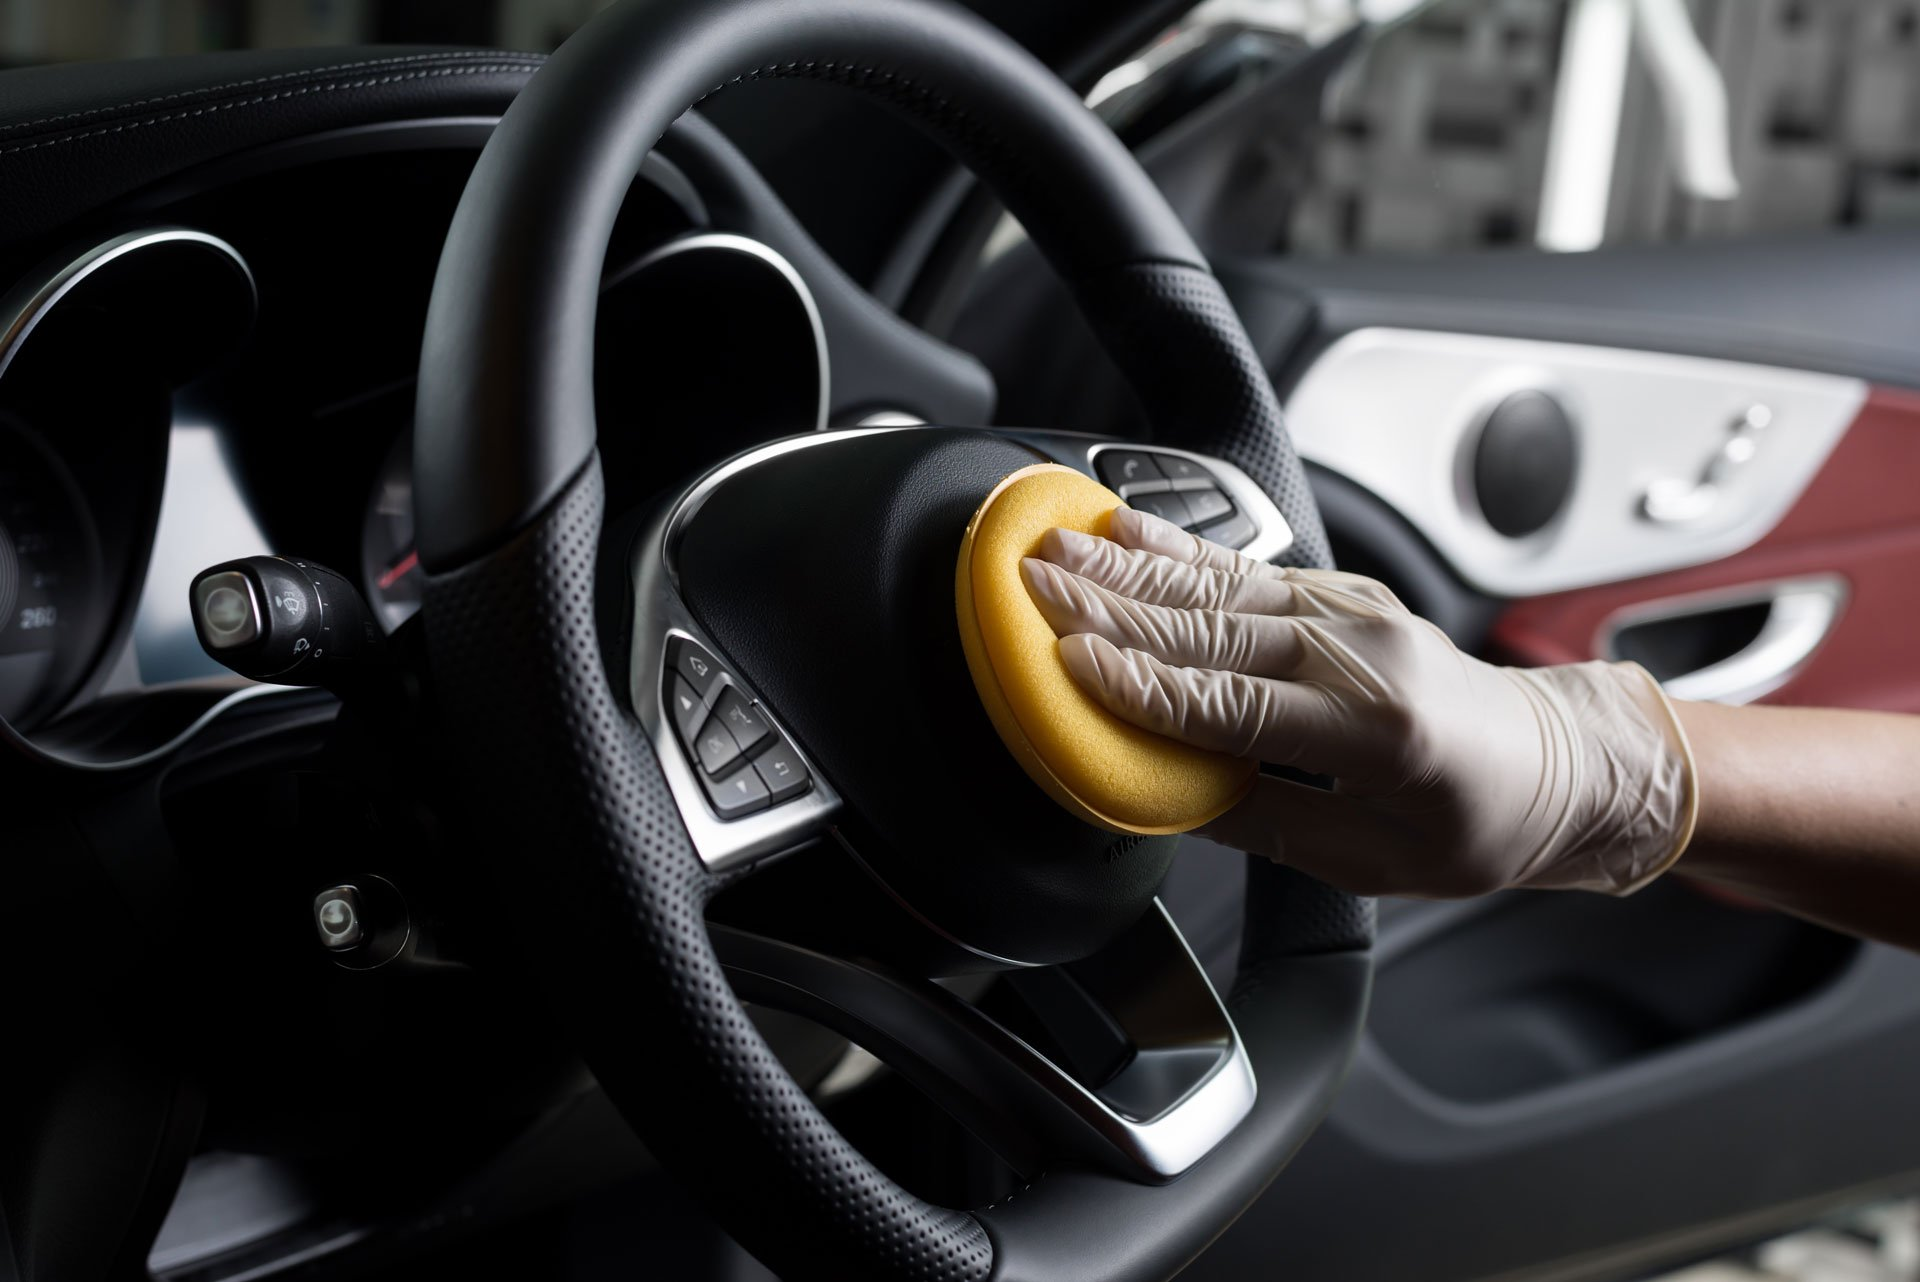 We'll detail and clean every part of your car's interior